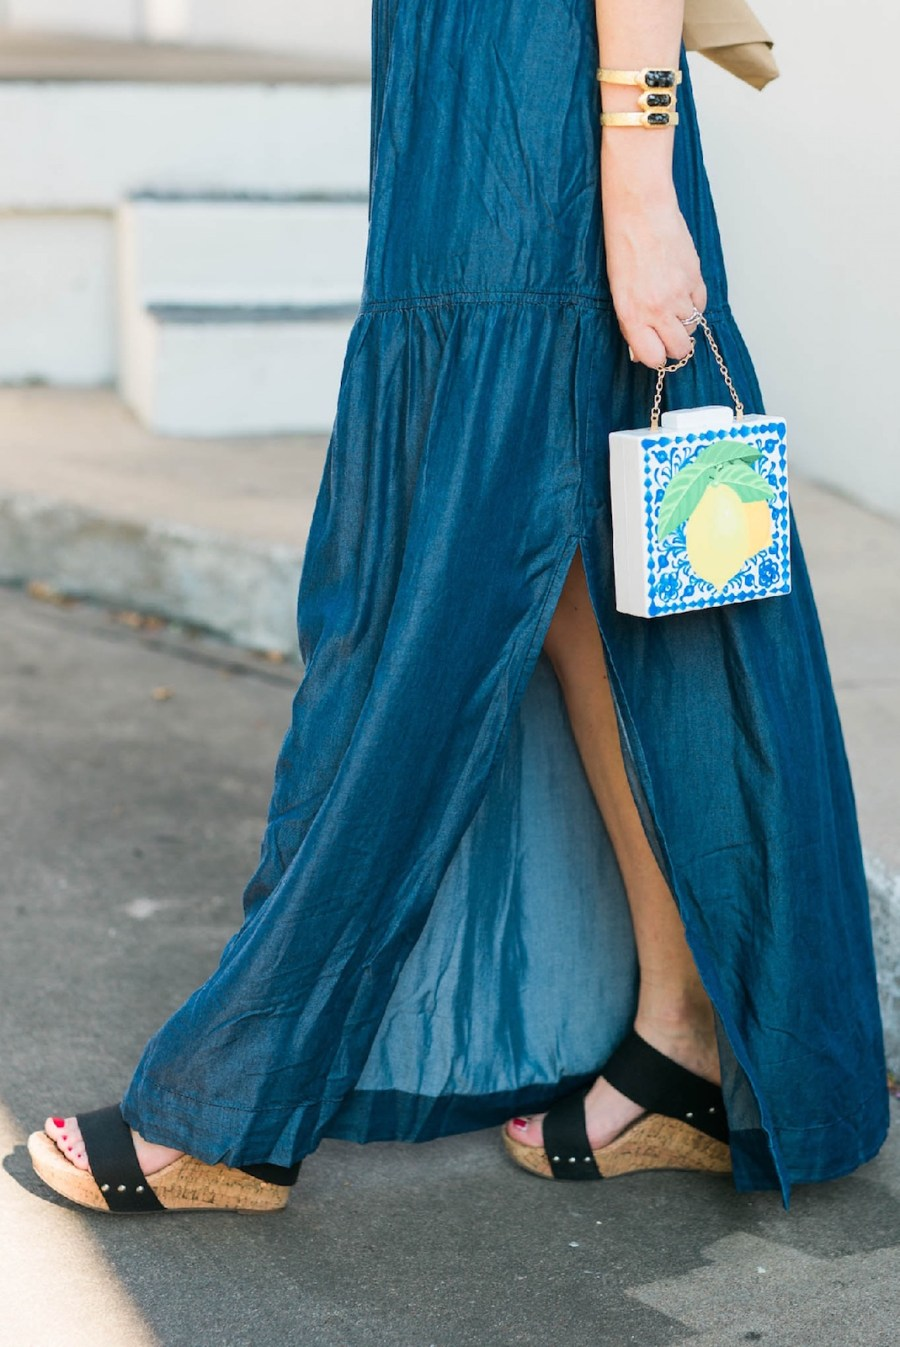 acrylic blue and white lemon clutch, sole society black and cork wedges, macy's chambray maxi dresses, dark blue maxi dress